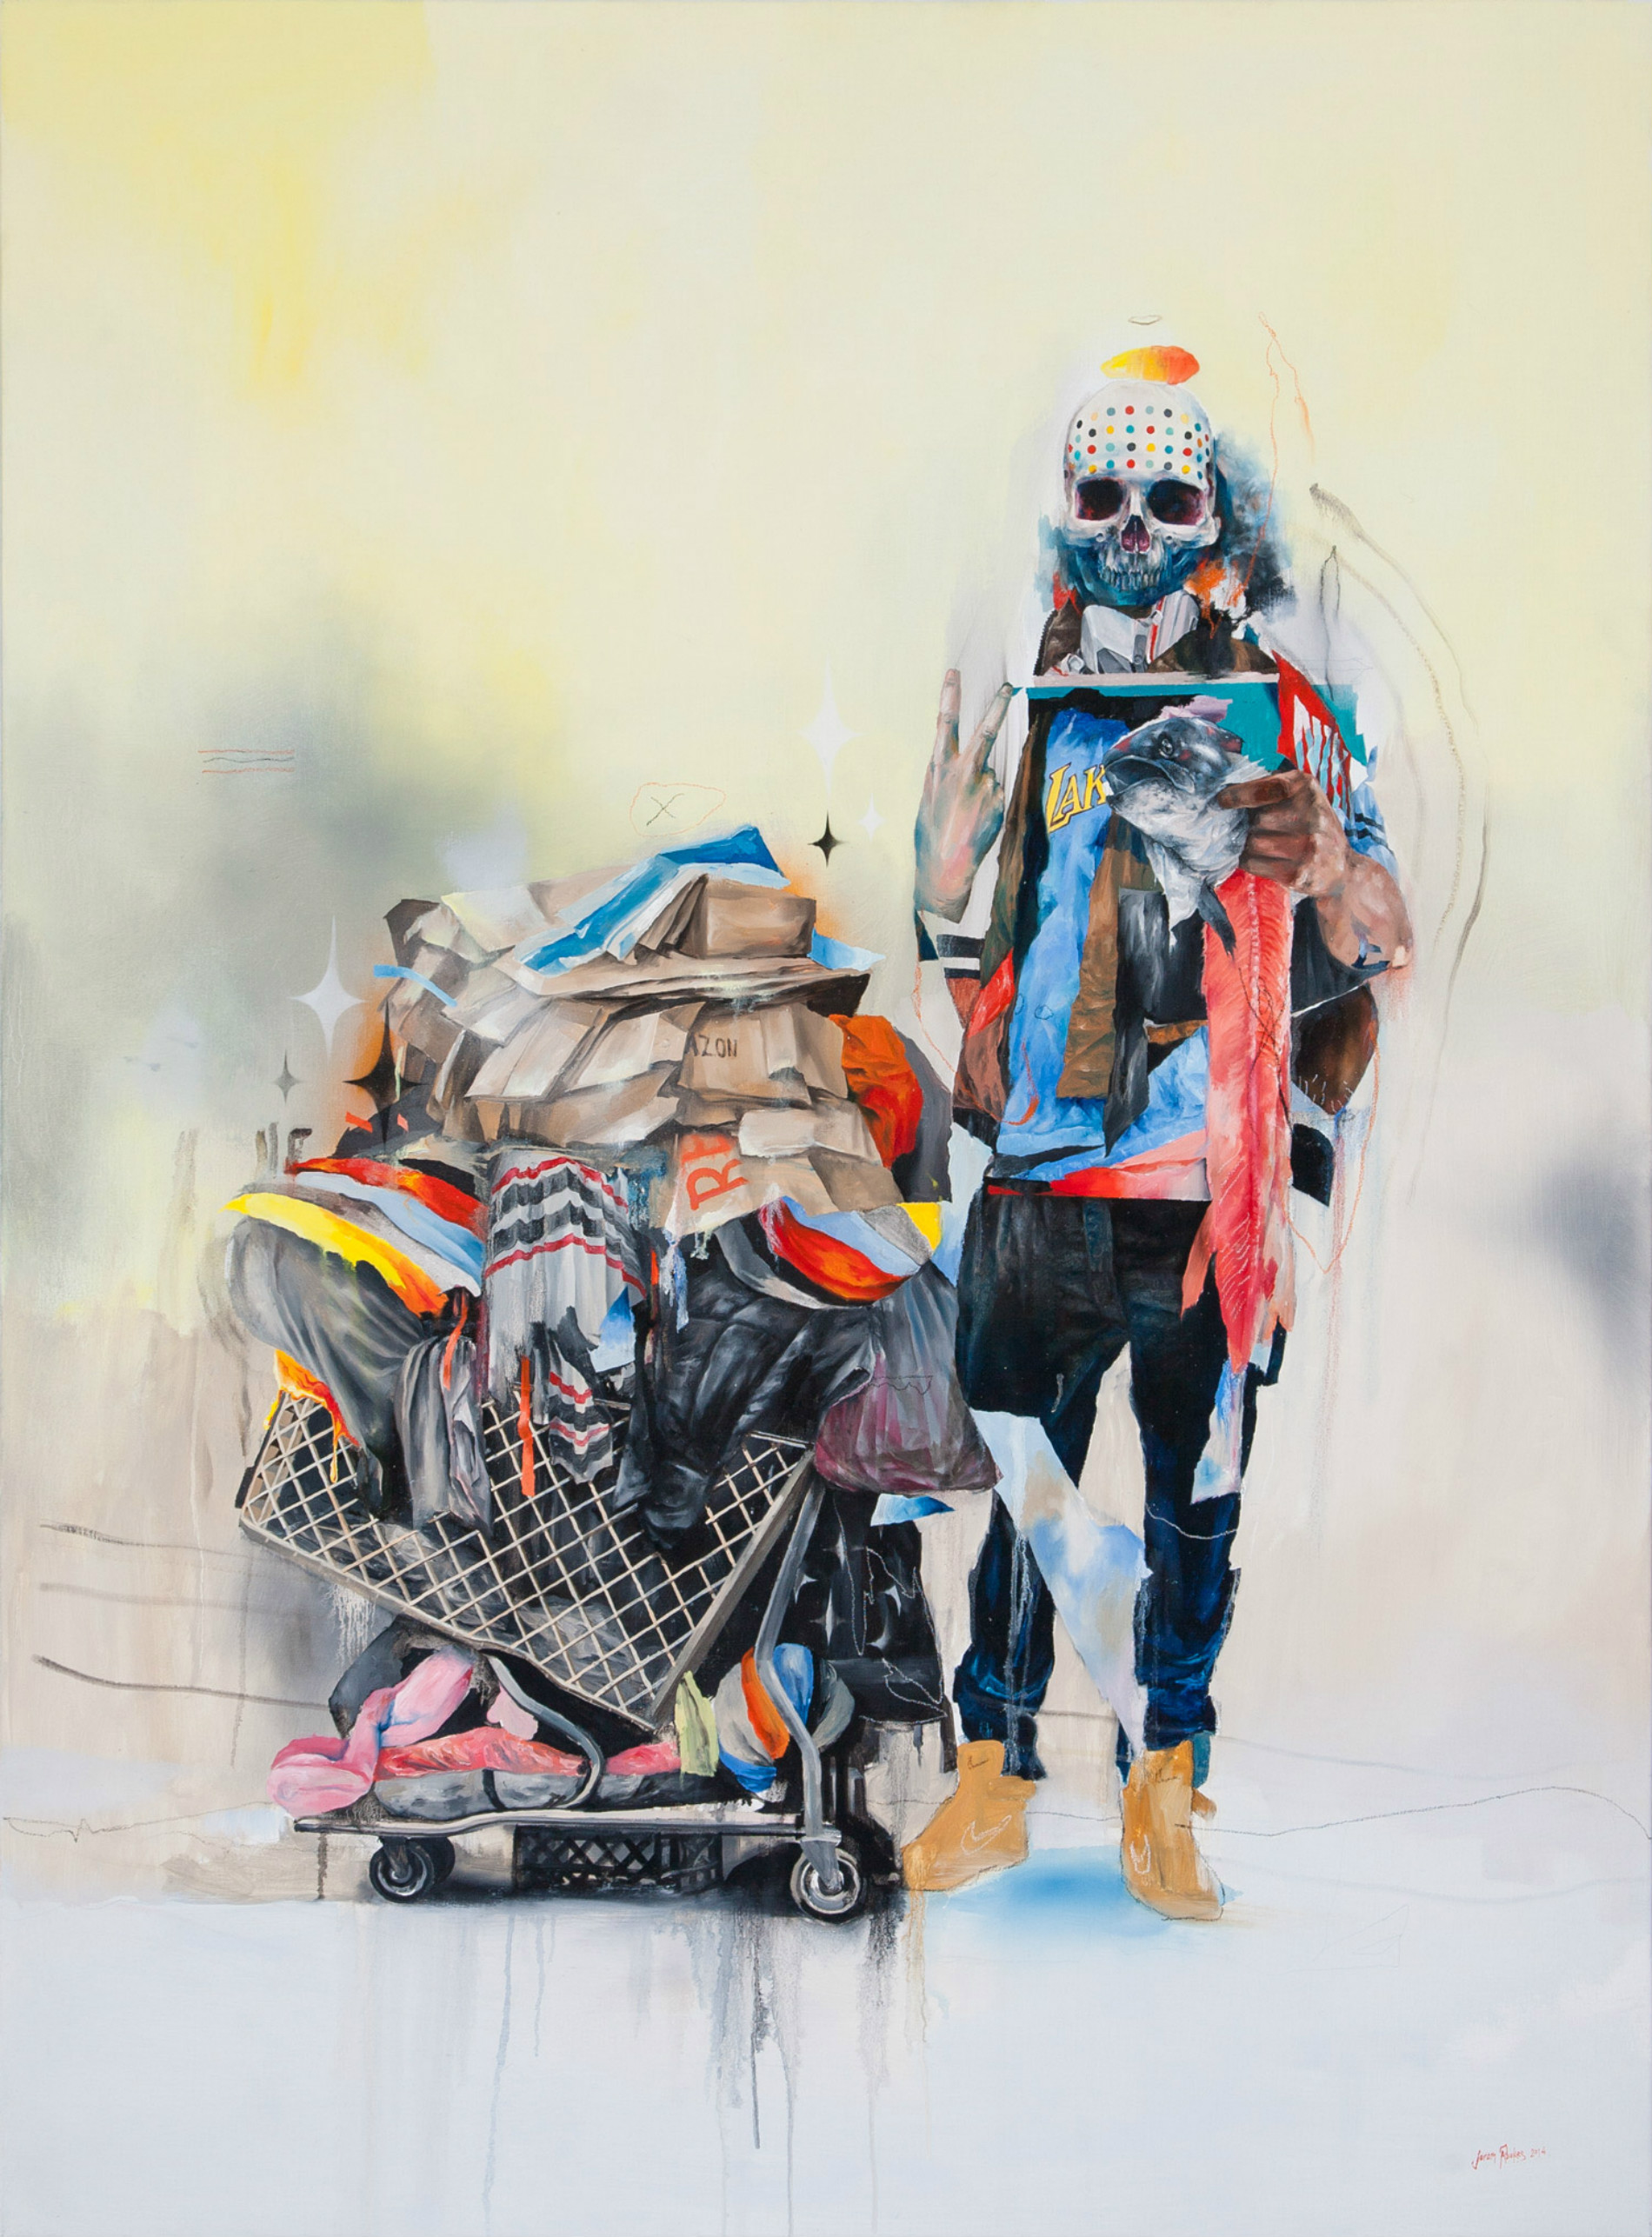 joram roukes dutch artist colour animals car abstract skeleton